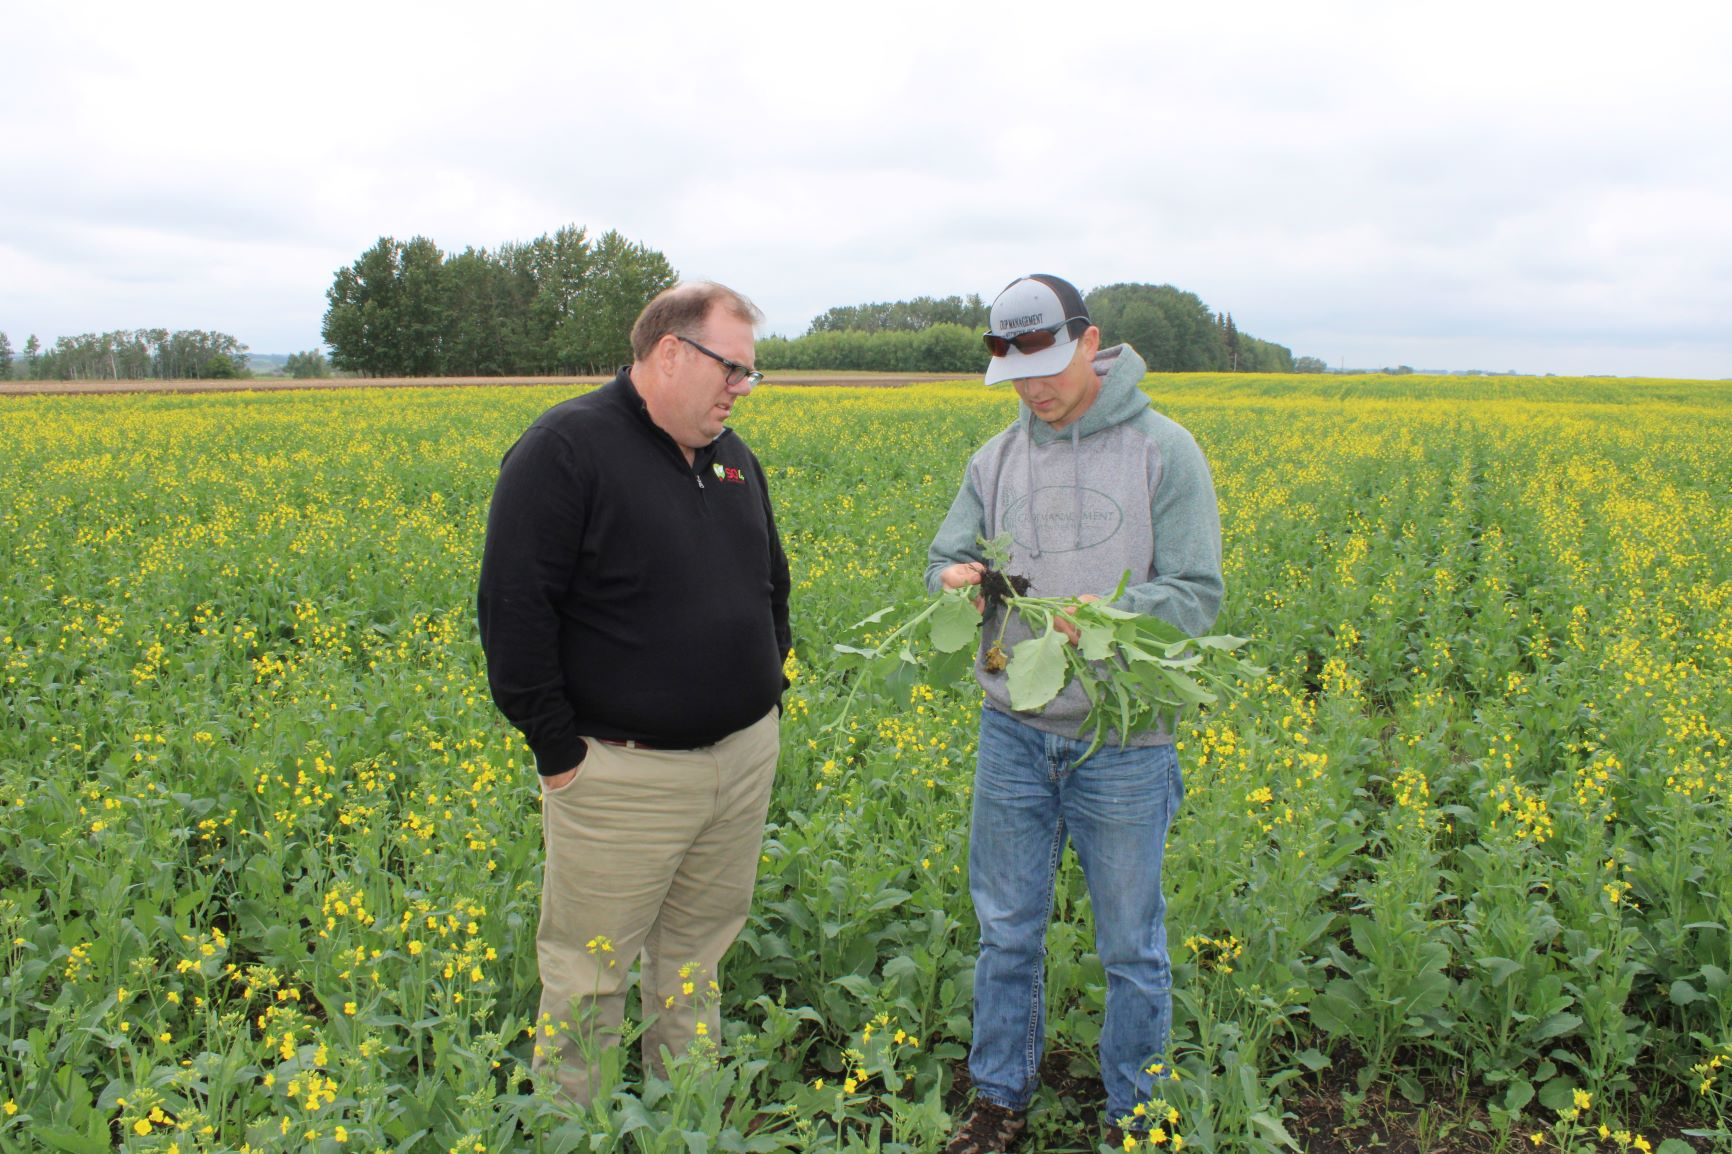 The Impact of Soil pH on Canola Club Root